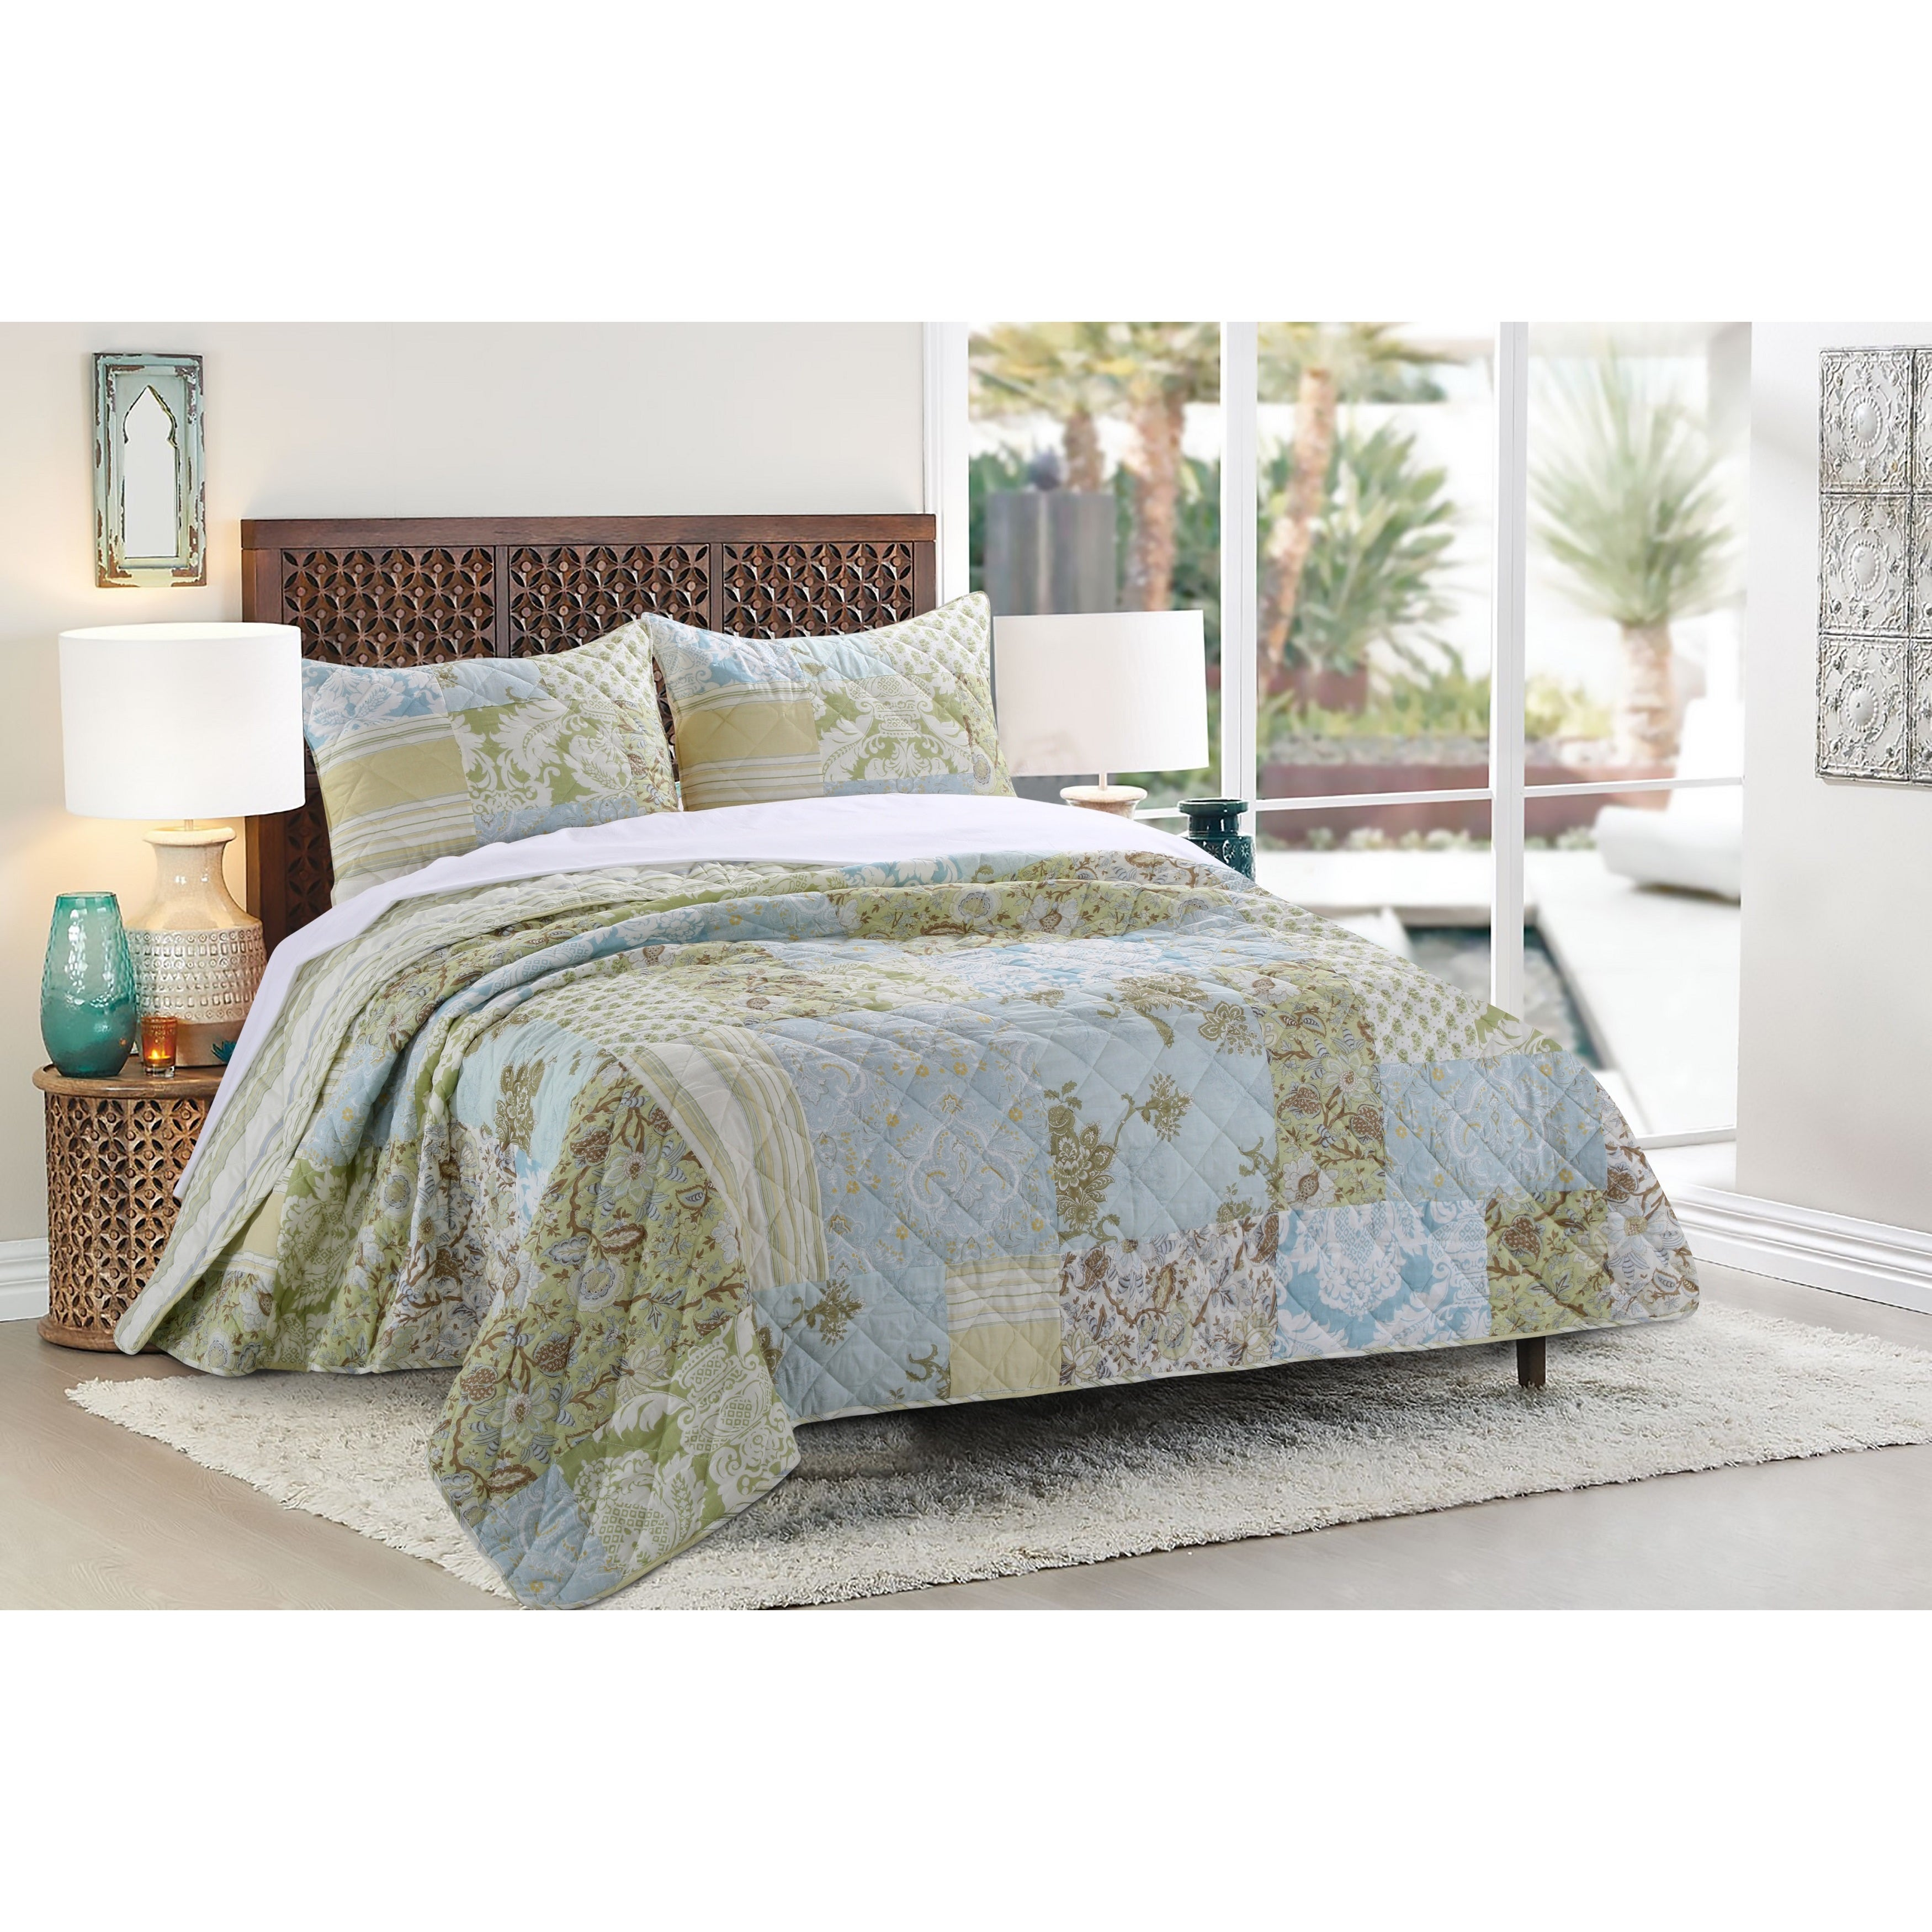 Greenland Home Fashions Mallory Authentic Patchwork 3 Piece Quilt Set Multi Overstock 11658243